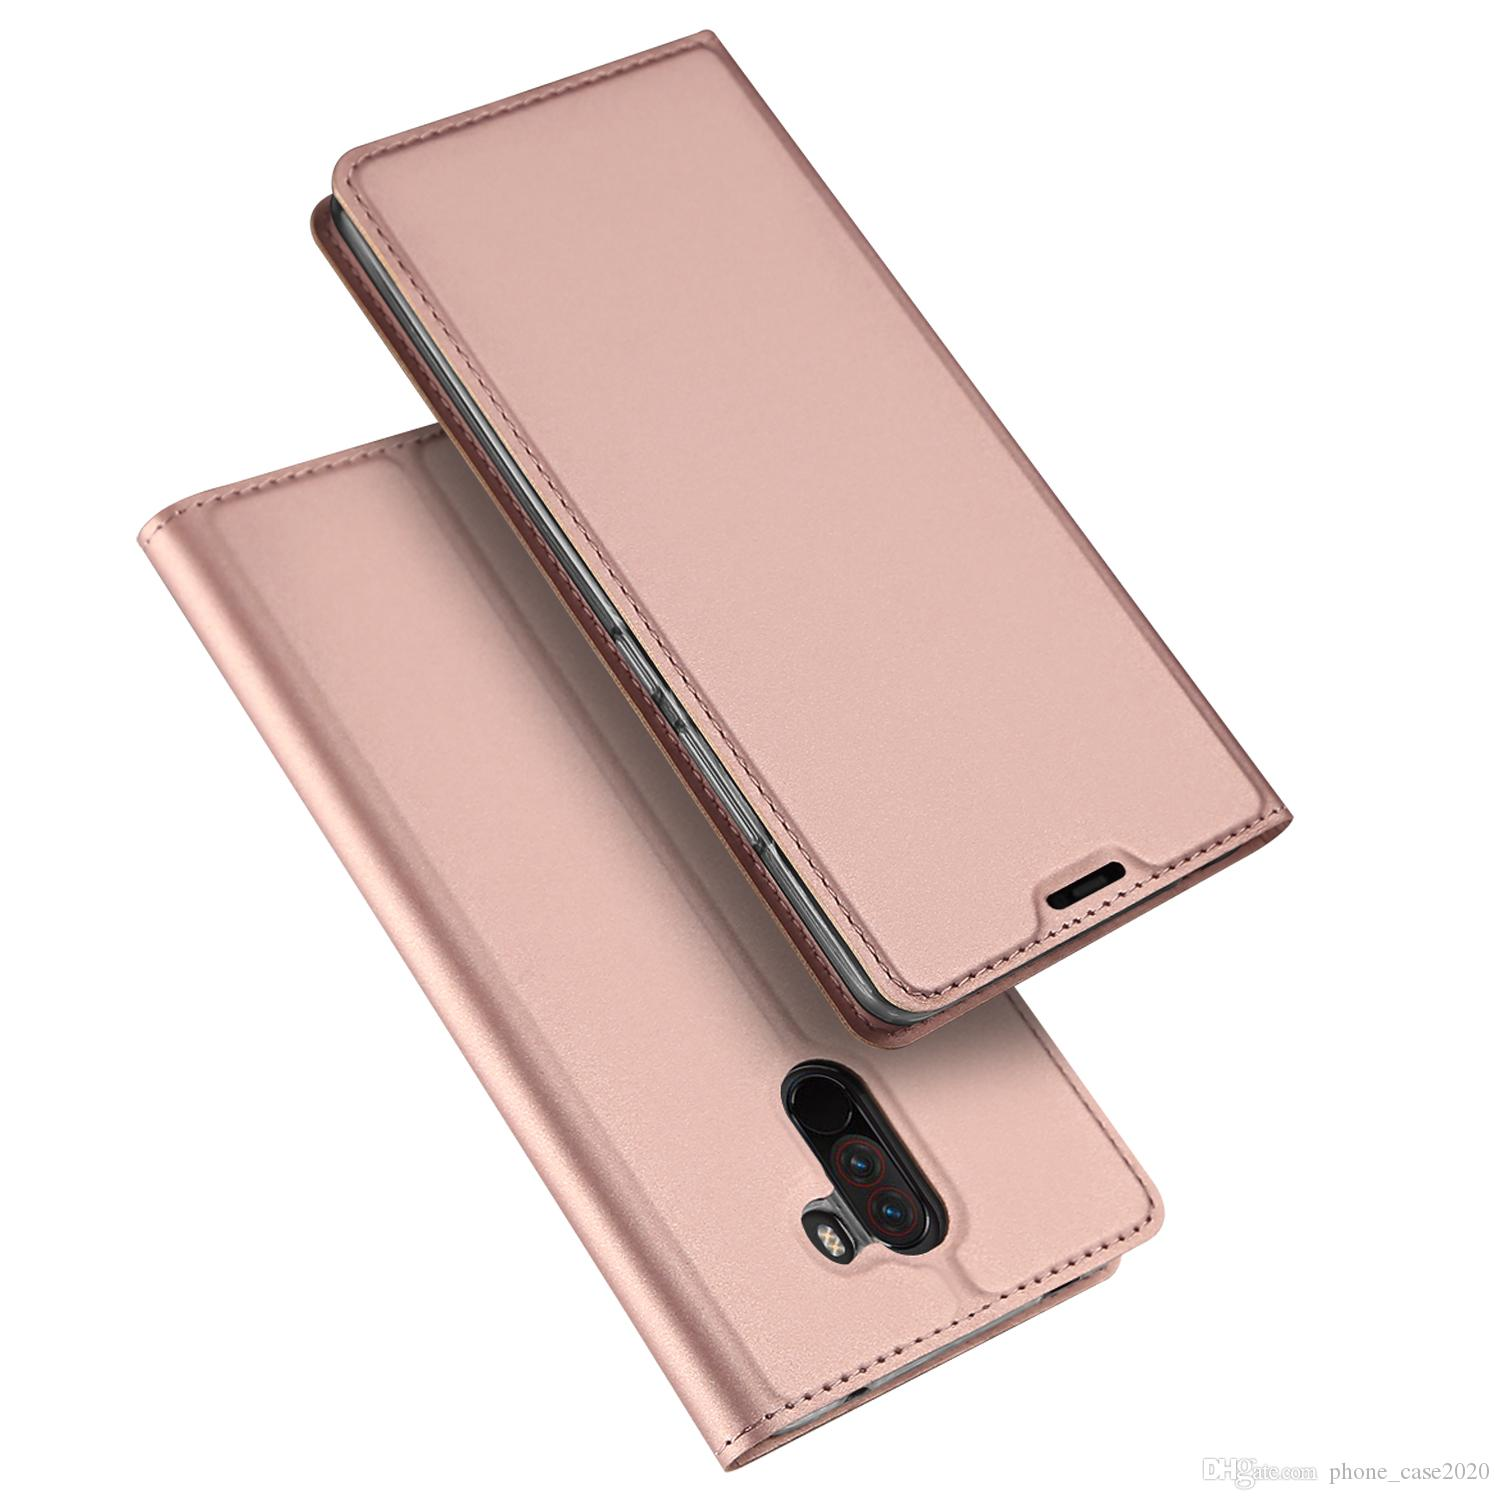 Dux Ducis Skin Pro Slim Pu Leather Smooth Card Slot Flip Stand Case For Xiaomi Pocophone F1 Silicone Phone Cases Cell Phone Cover From Phone case2020